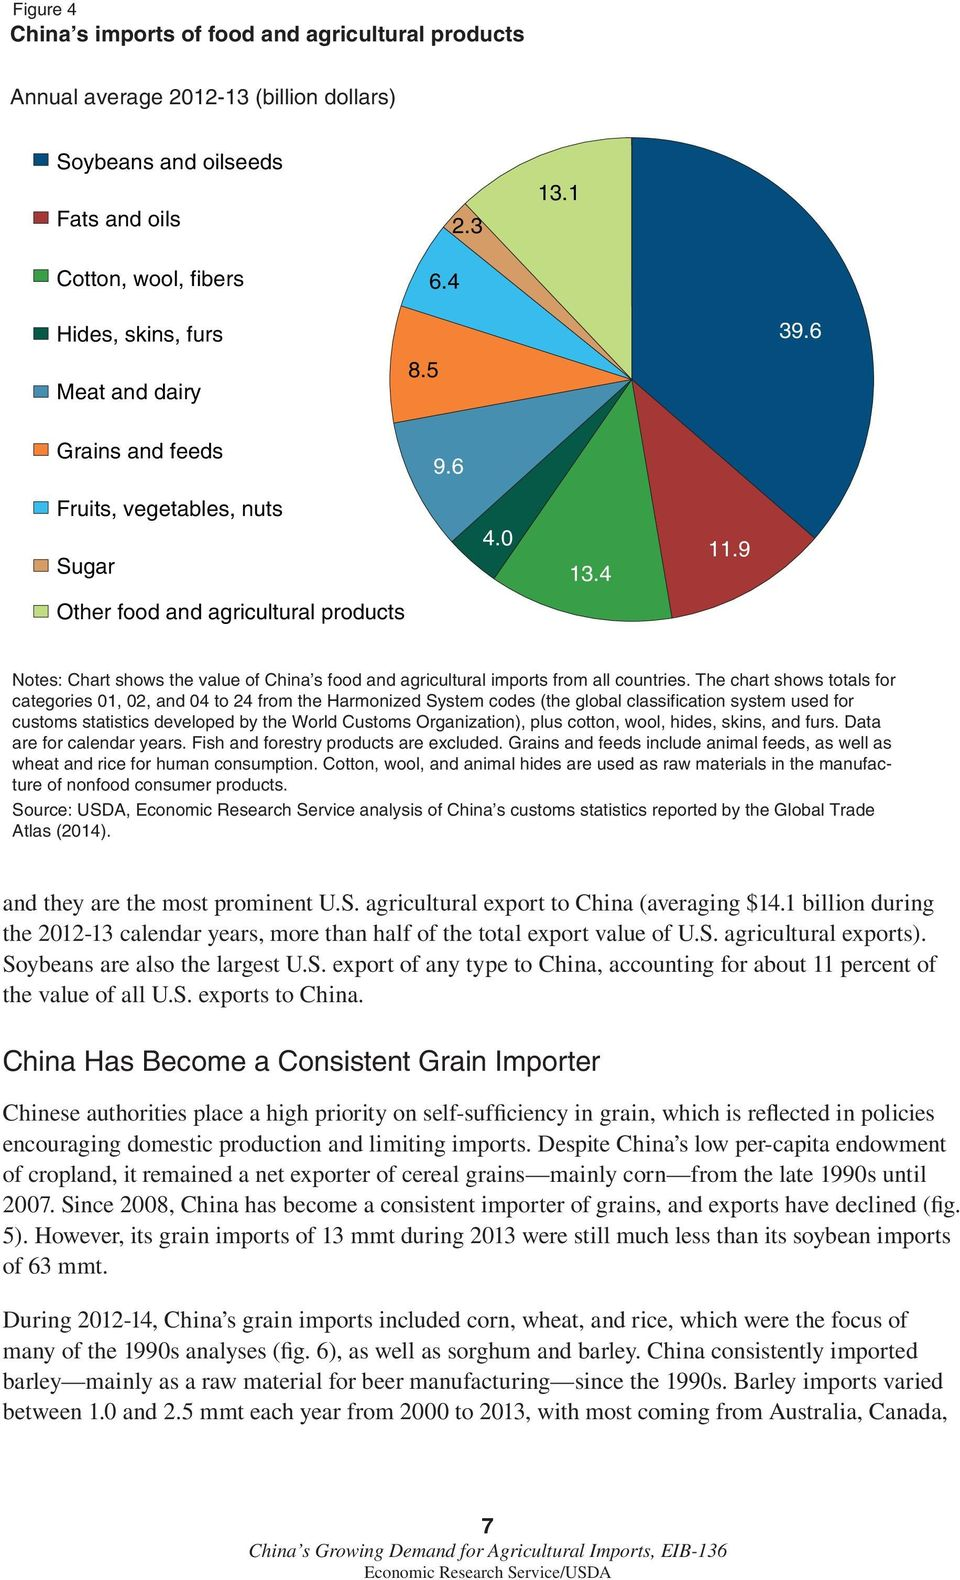 China s Growing Demand for Agricultural Imports - PDF